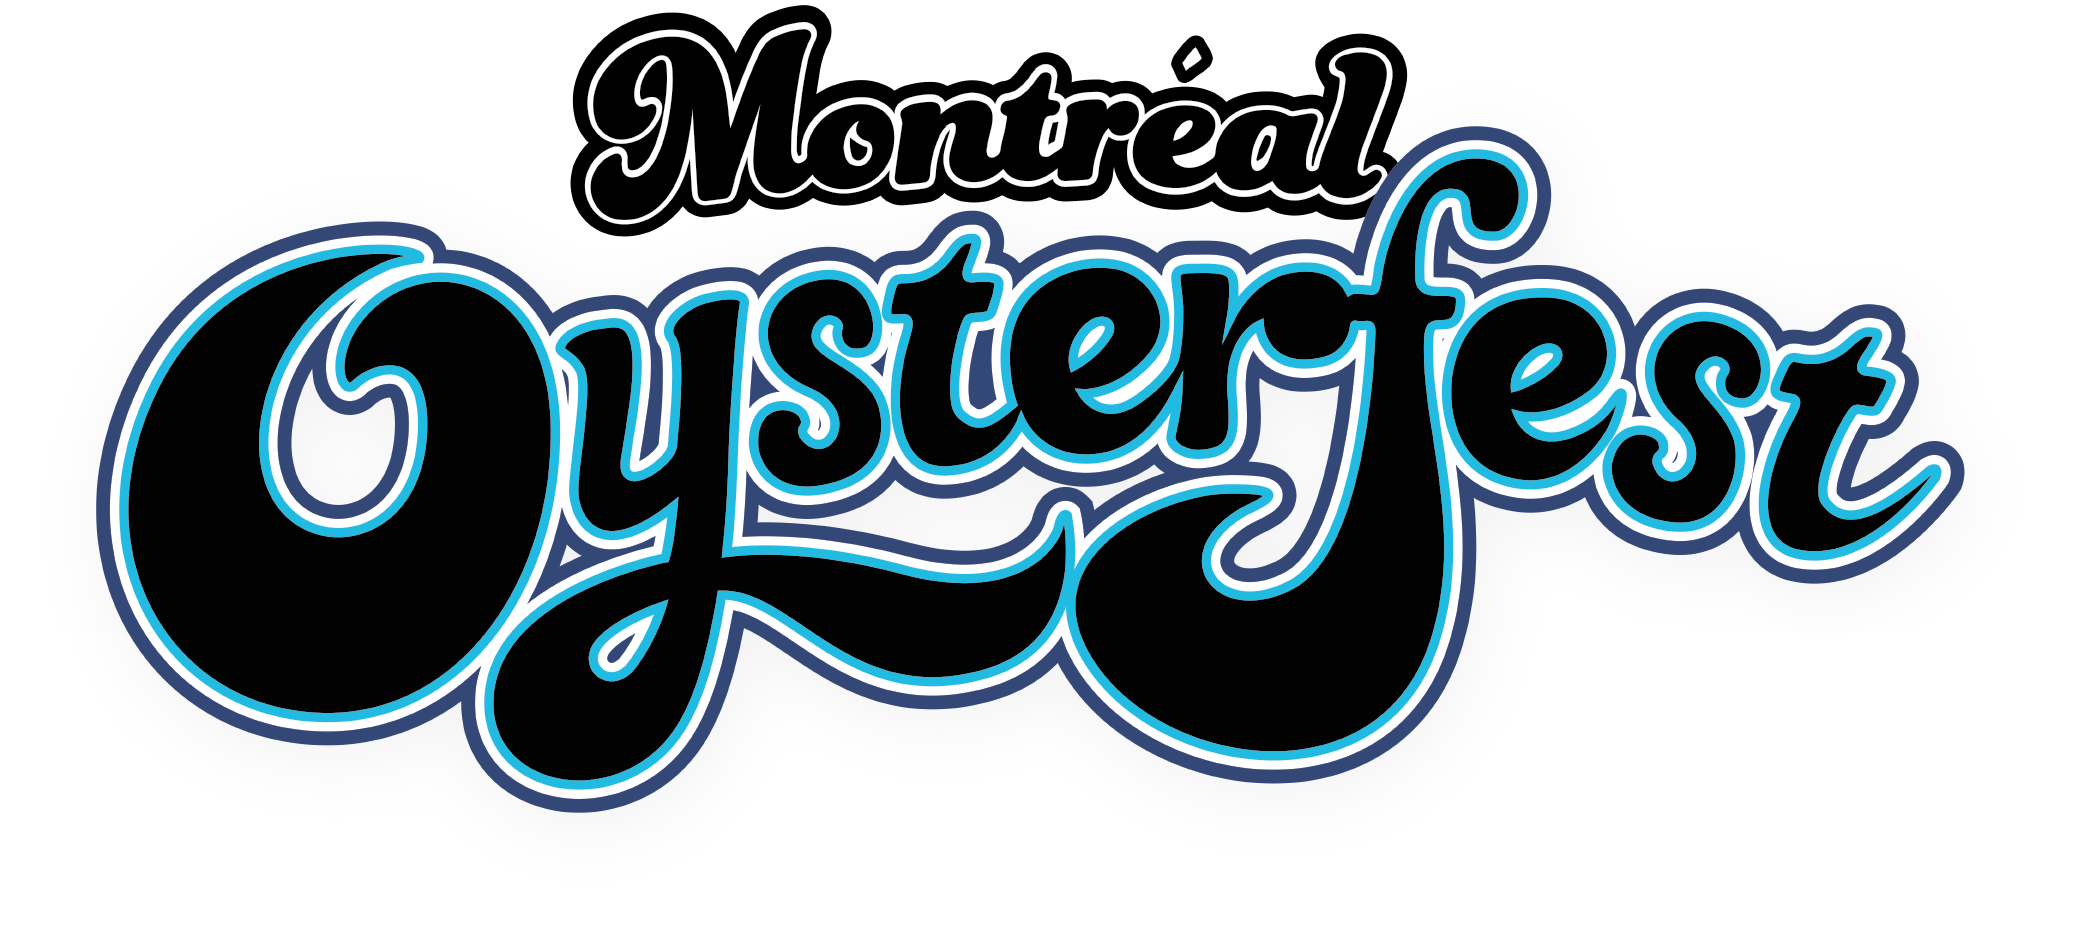 The Montreal Oyster Fest